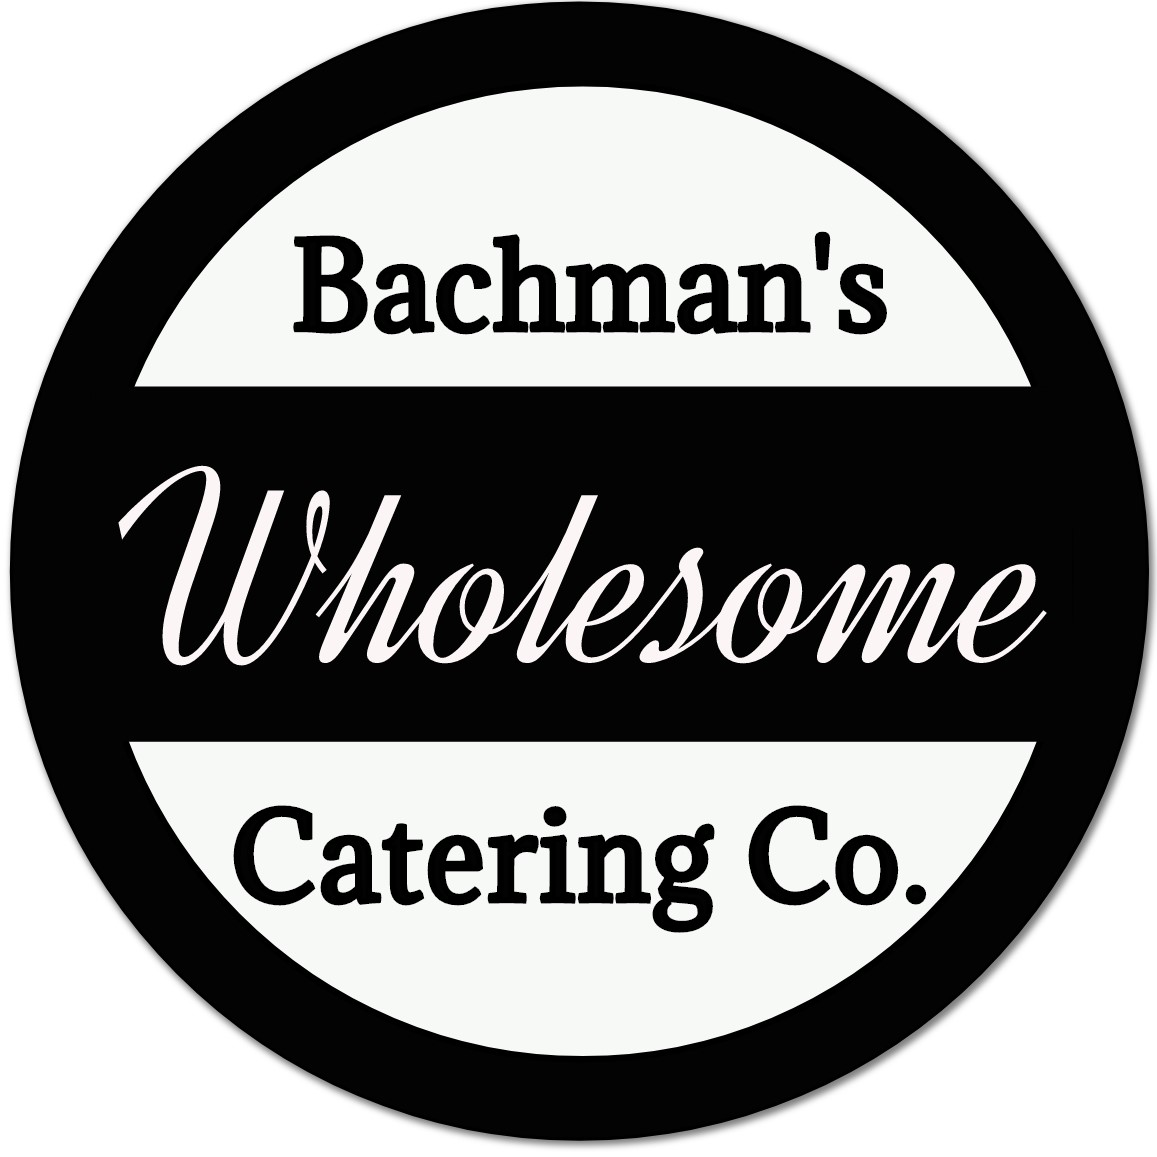 Bachman's Wholesome Catering Co.